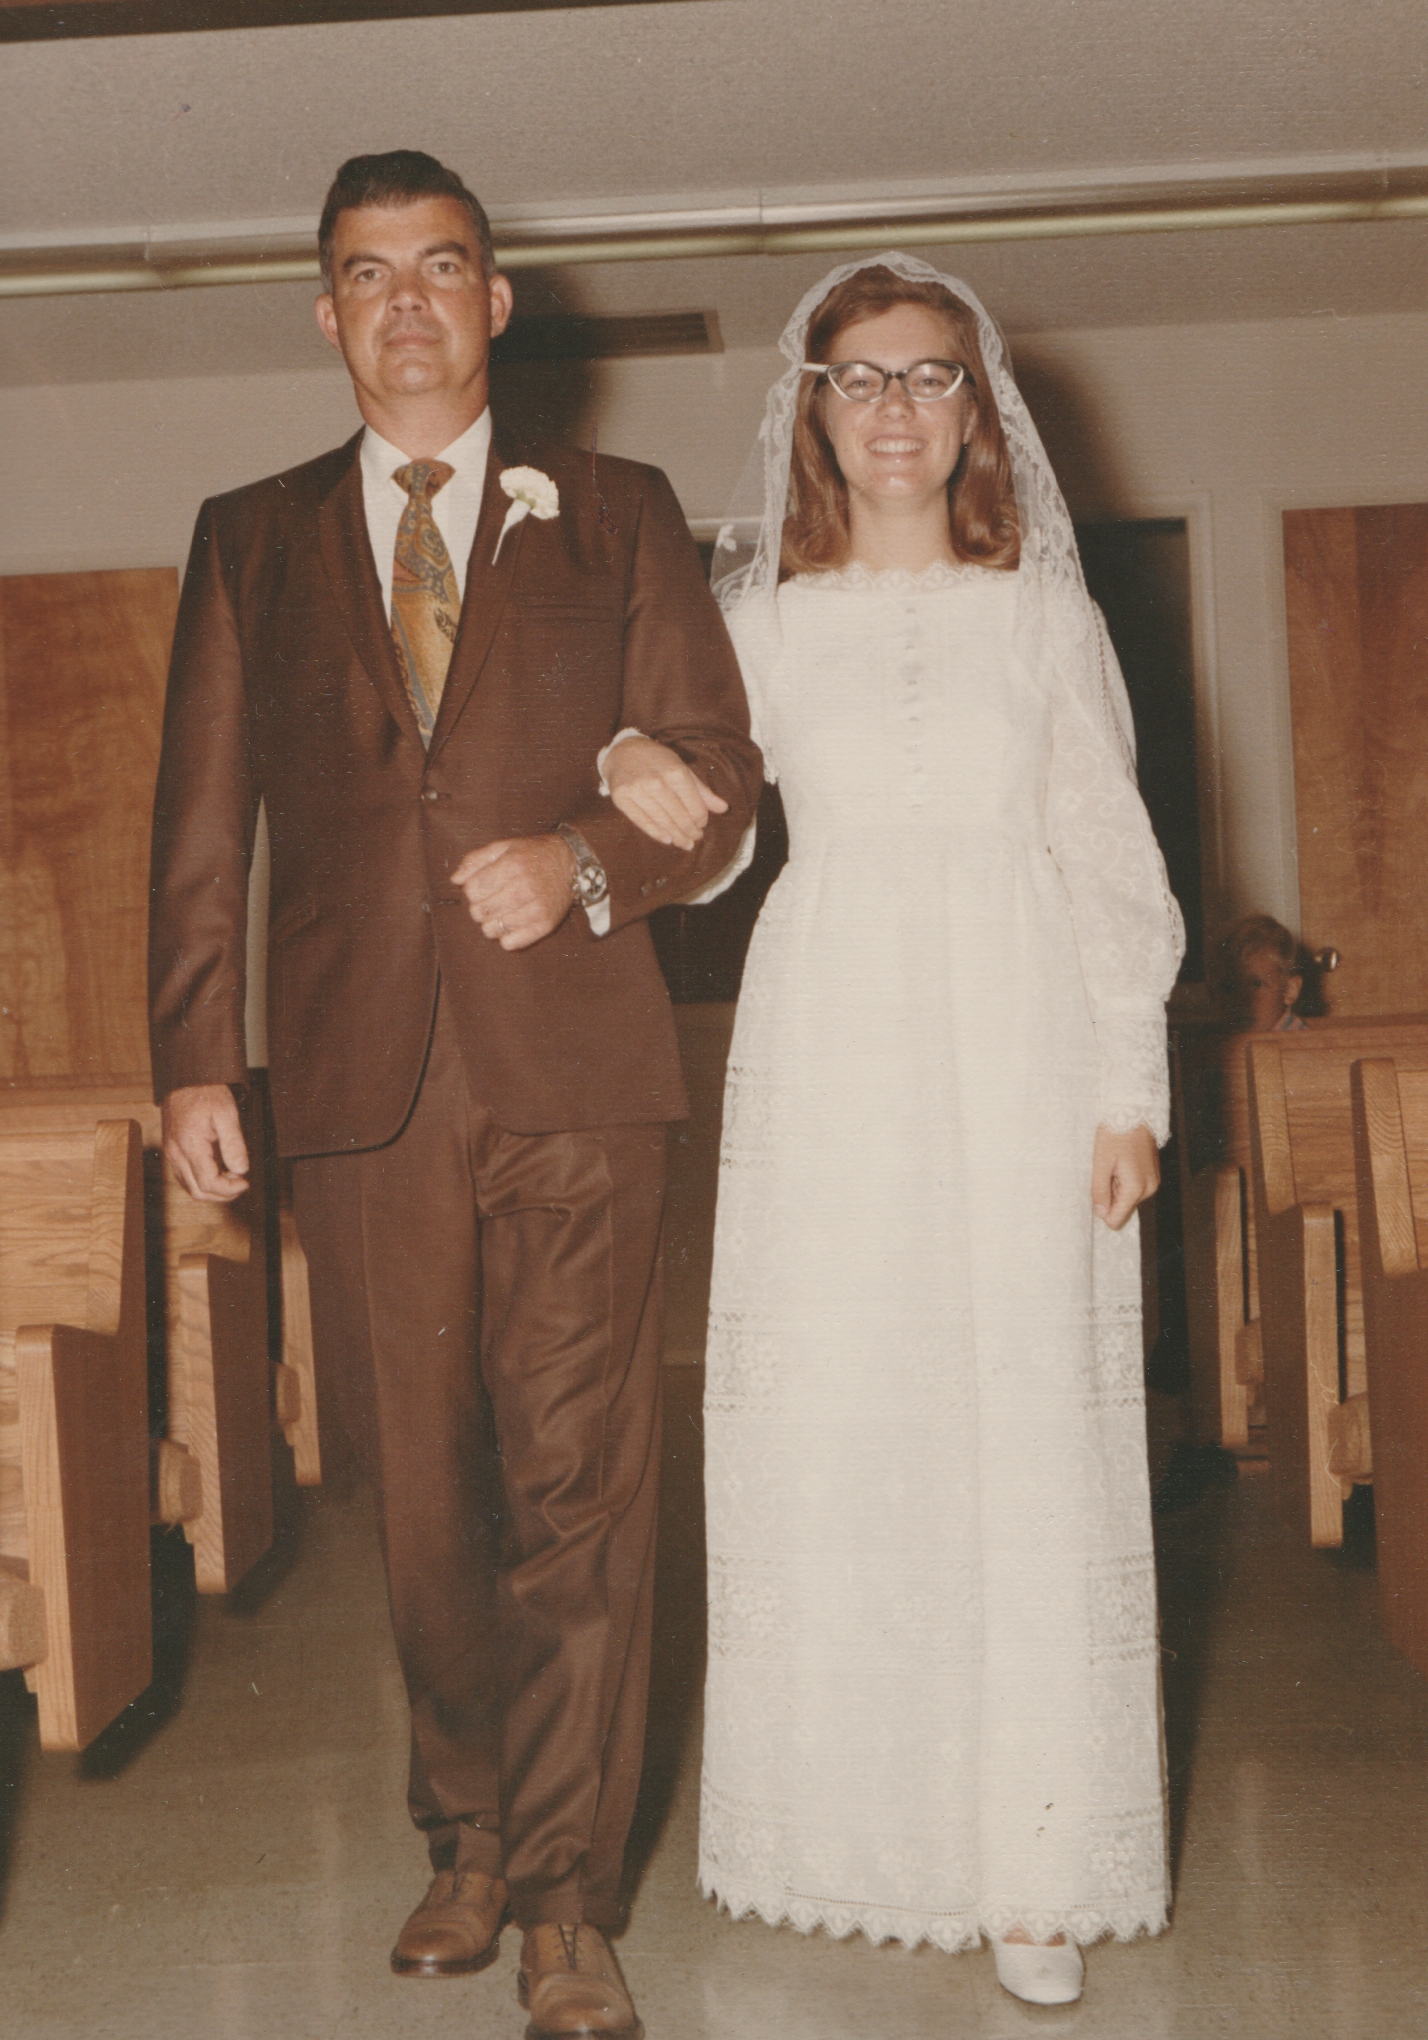 1971-09-04 - Saturday - Wedding Photos-02.png